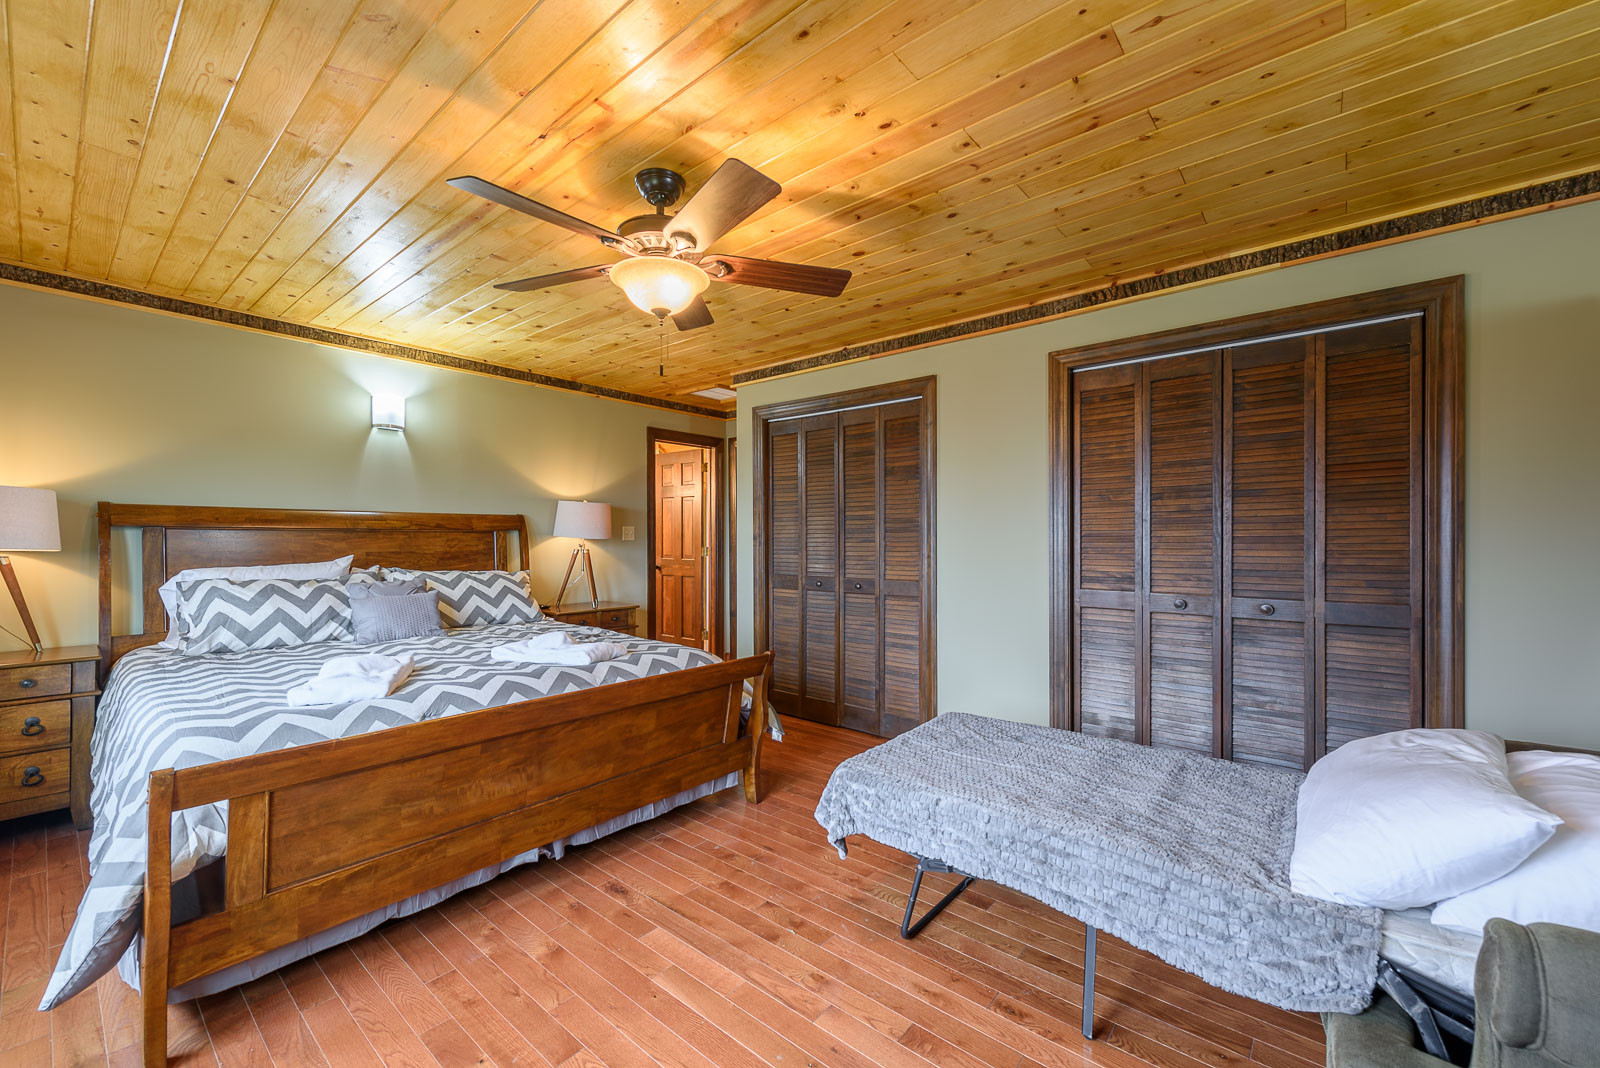 hardwood flooring boone nc of appalachian mountain lodge mountain family lodge boone family throughout 150139691